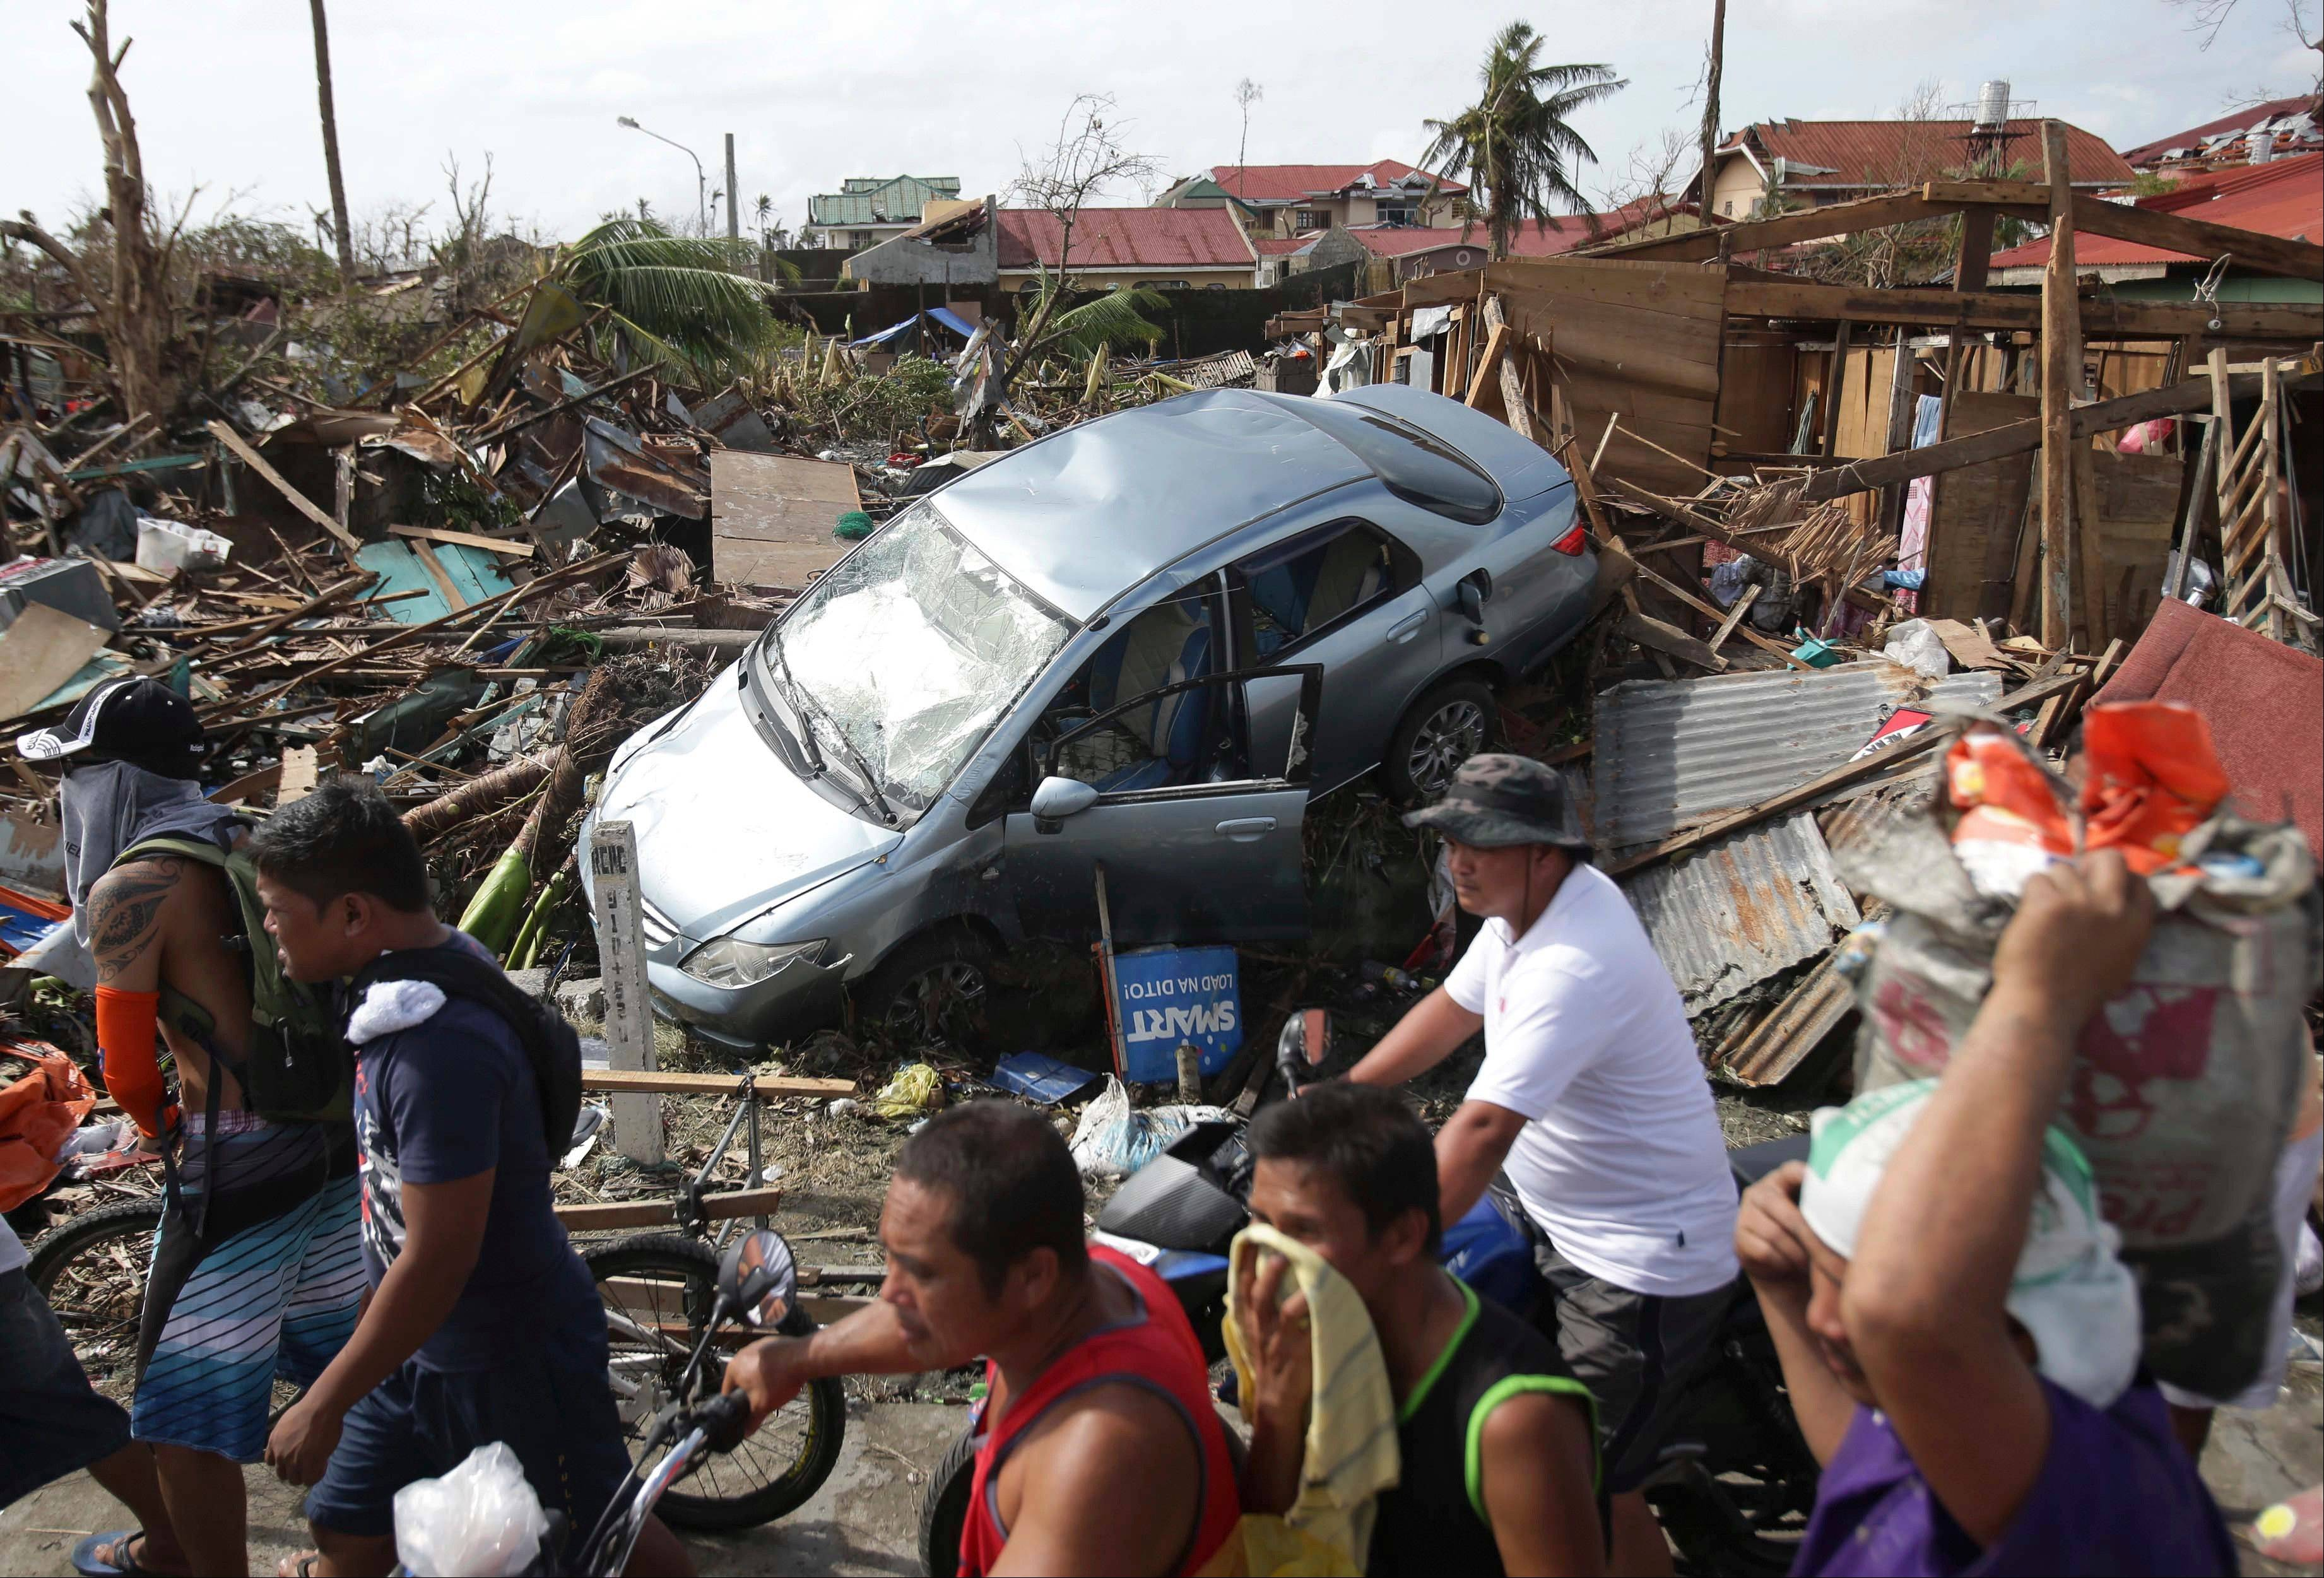 Survivors move past the damages caused by Typhoon Haiyan in Tacloban city, Leyte province central Philippines on Monday,.